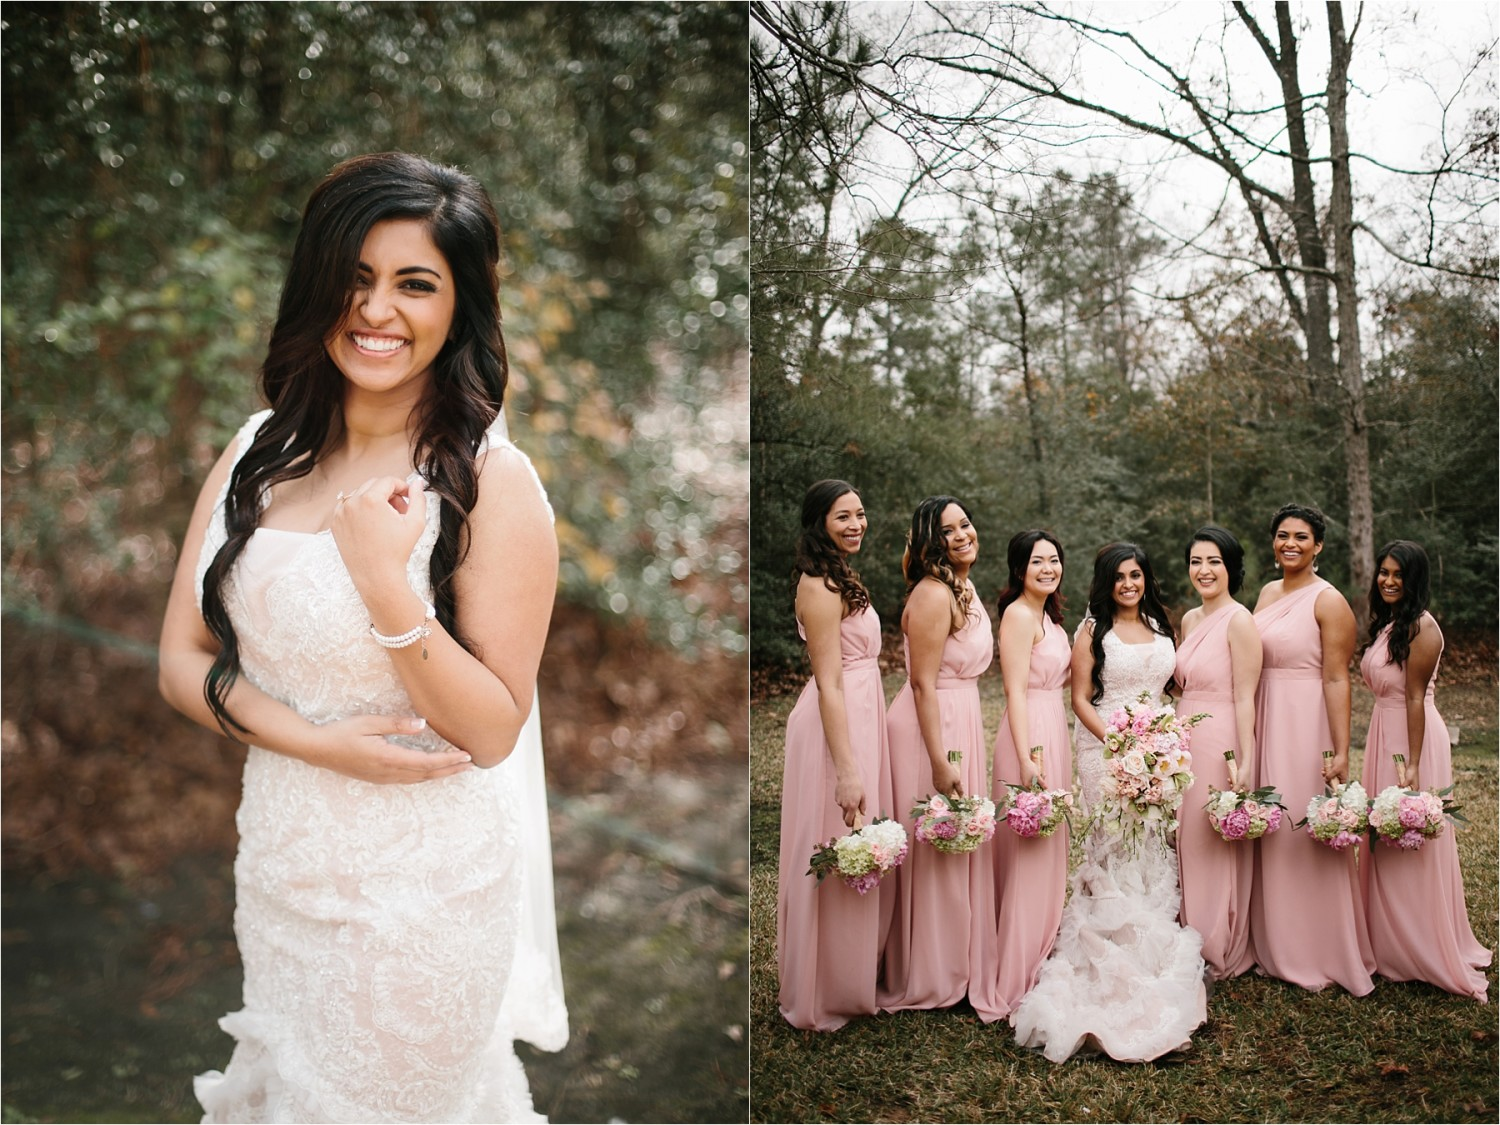 Jeanpaul + Ann __ a colorful wedding at Ashton Gardens in Houston TX by North Texas Wedding Photographer Rachel Meagan Photography _ 15